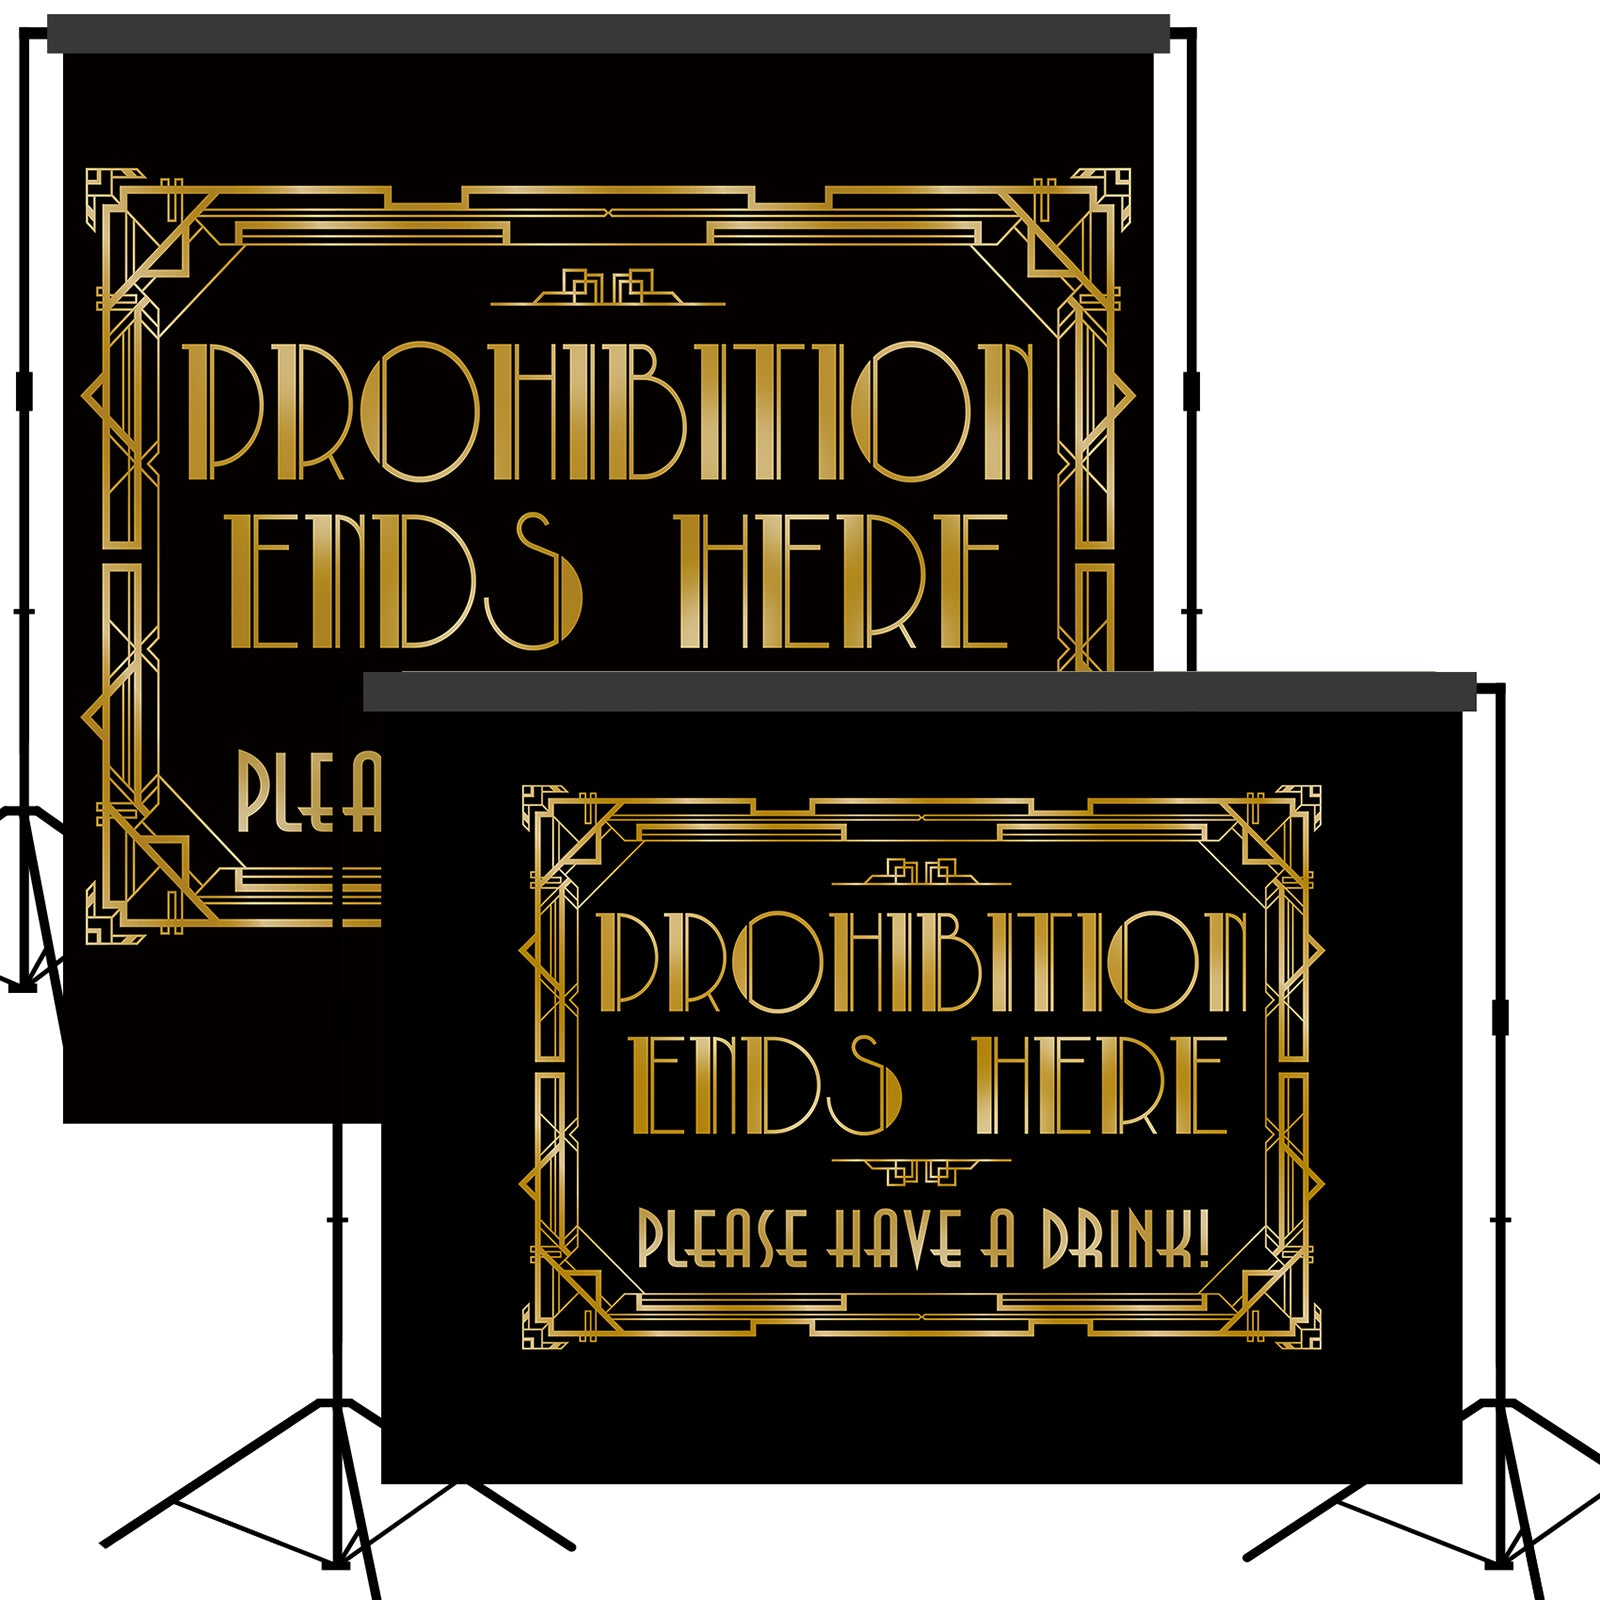 Roaring 20s Gatsby Prohibition Ends Here Backdrop